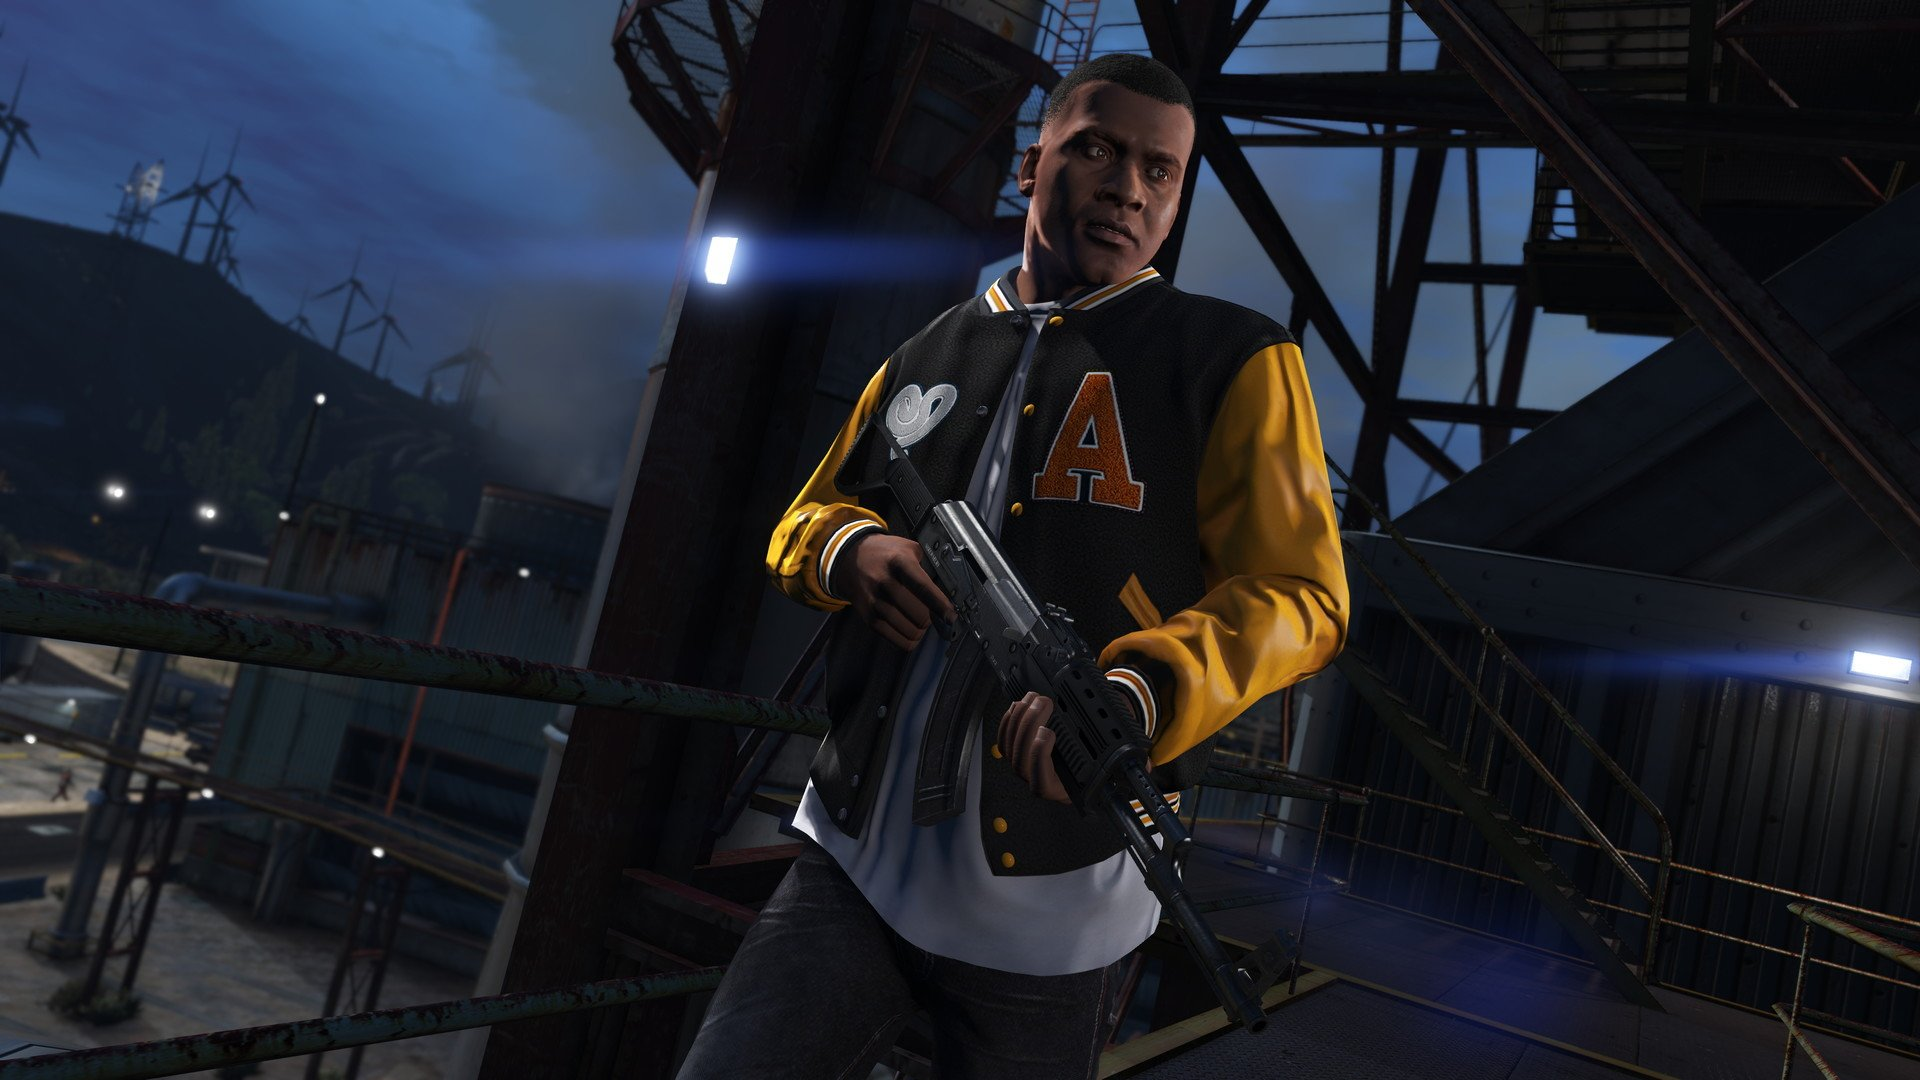 GTA 5 available for free on Epic Games Store